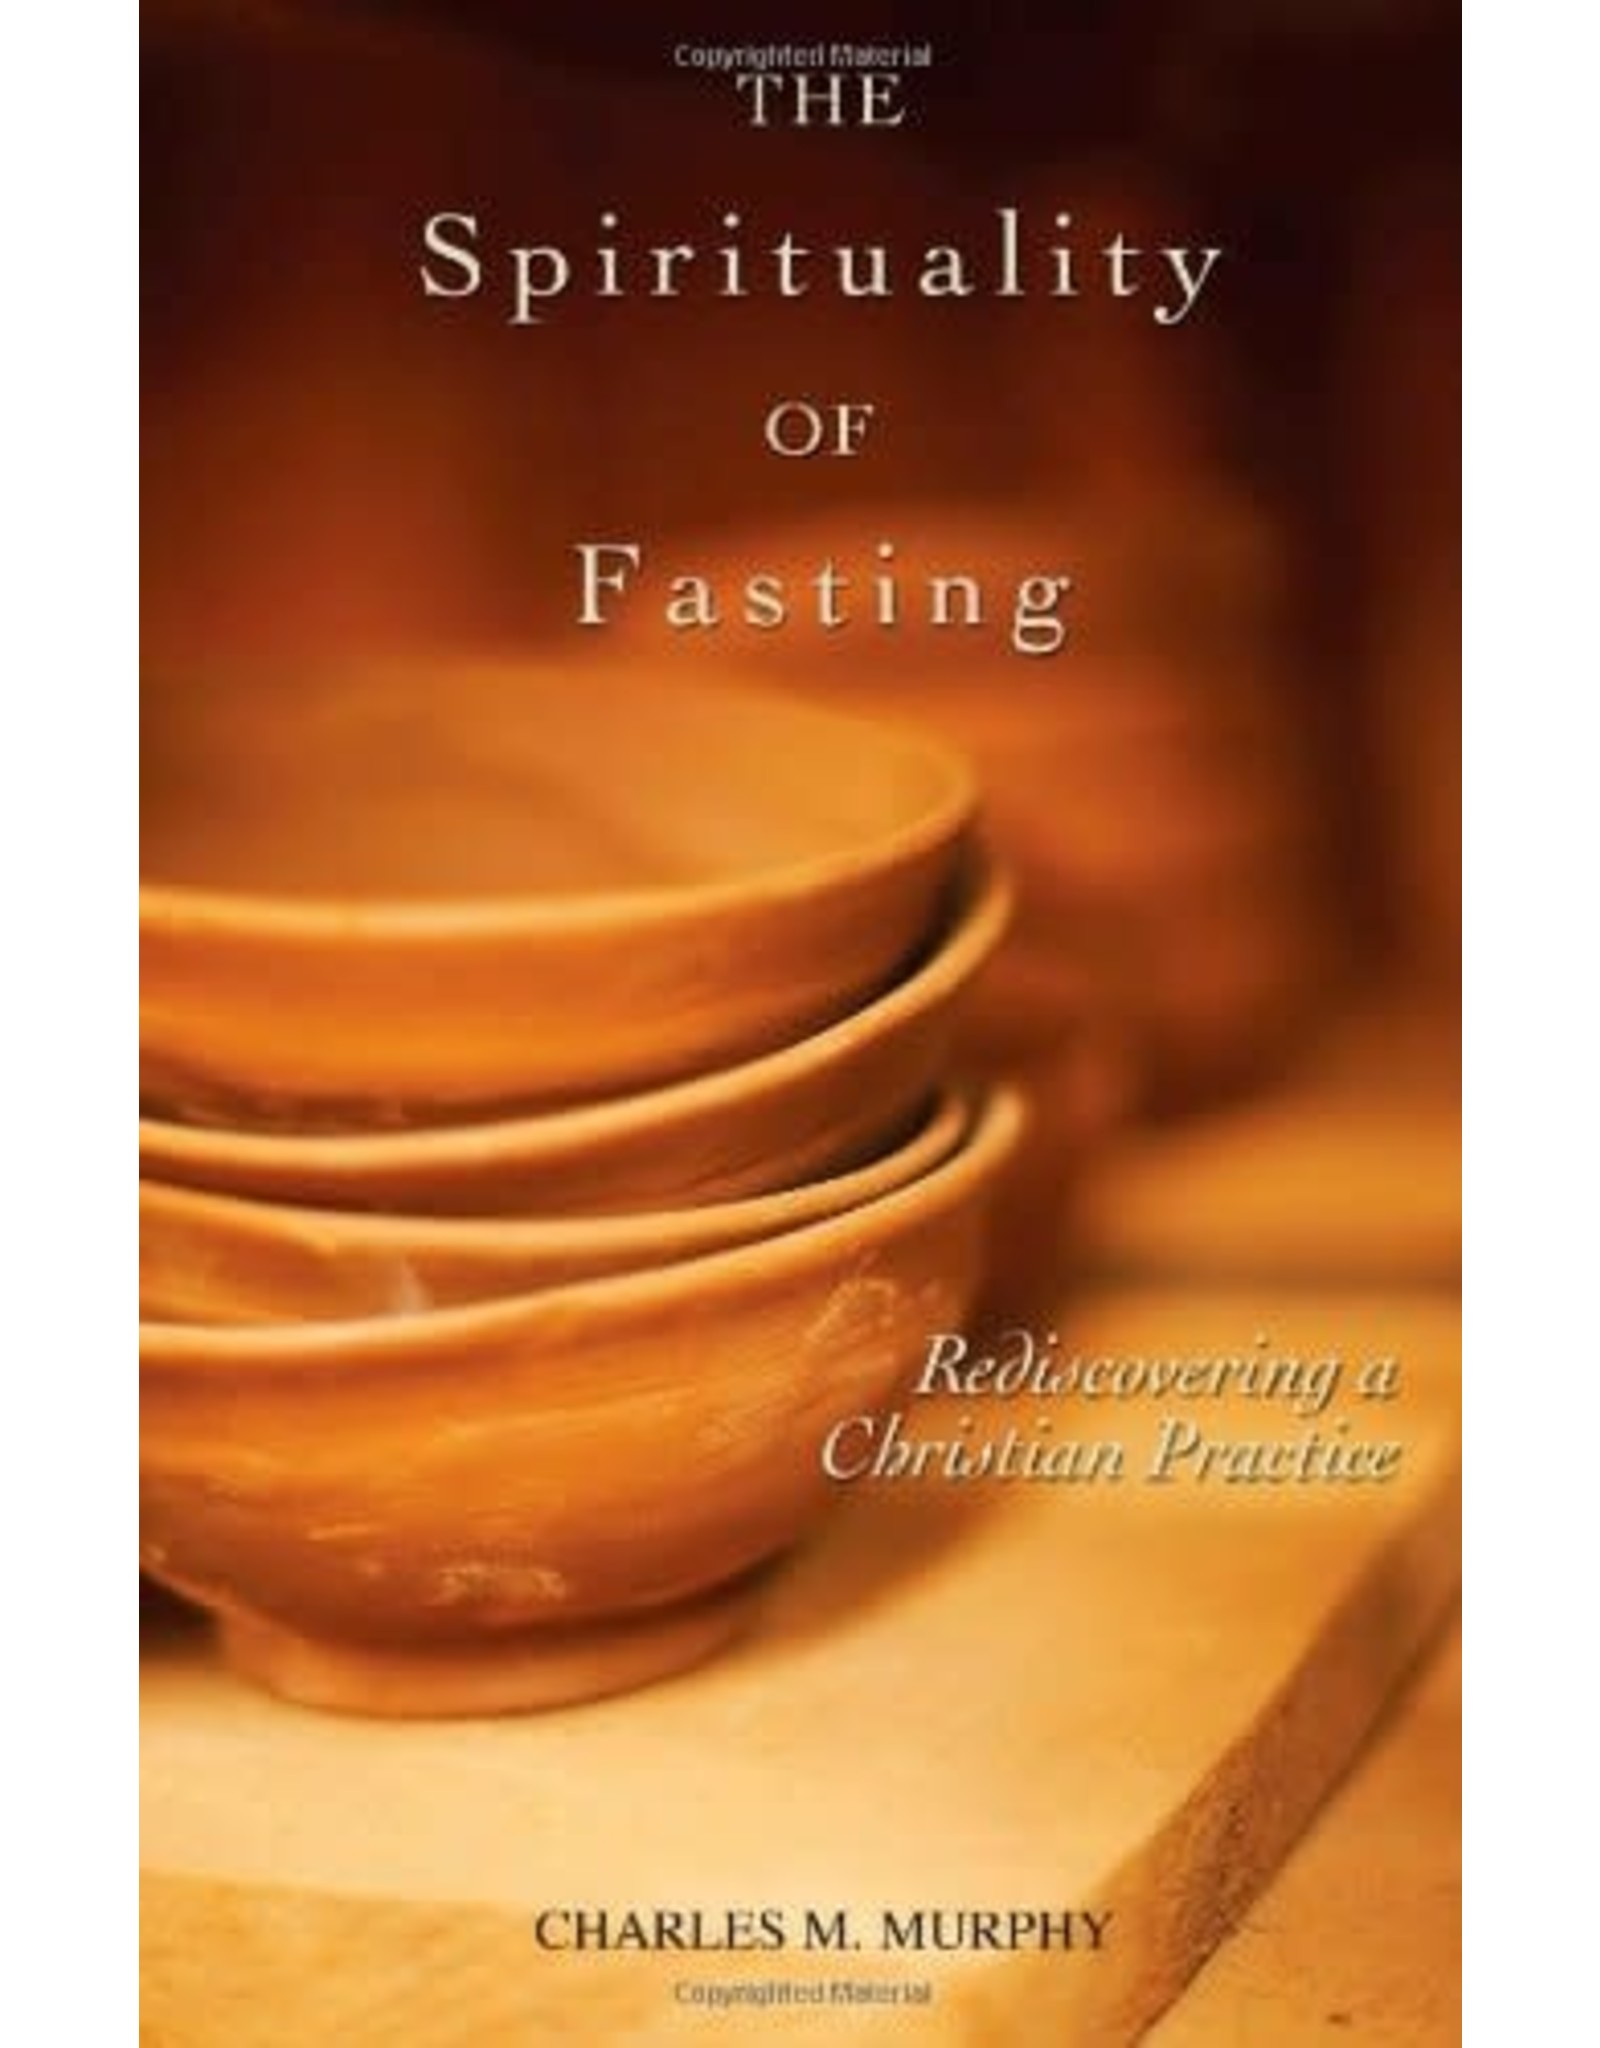 Murphy, Charles The Spirituality of Fasting: Rediscovering a Christian Practice